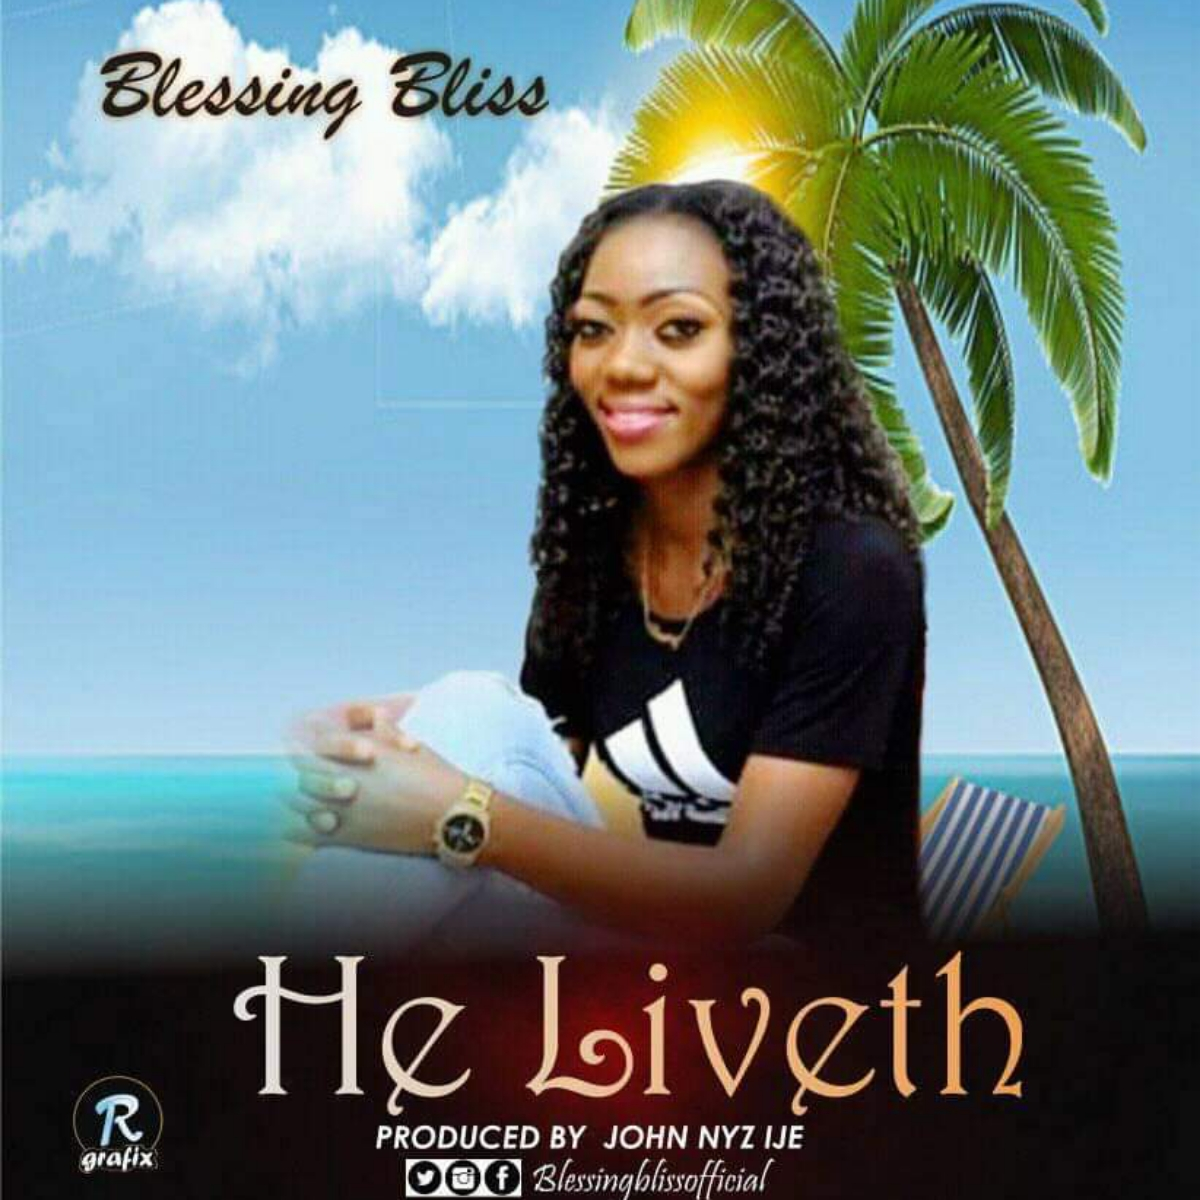 Blessing Bliss He Liveth